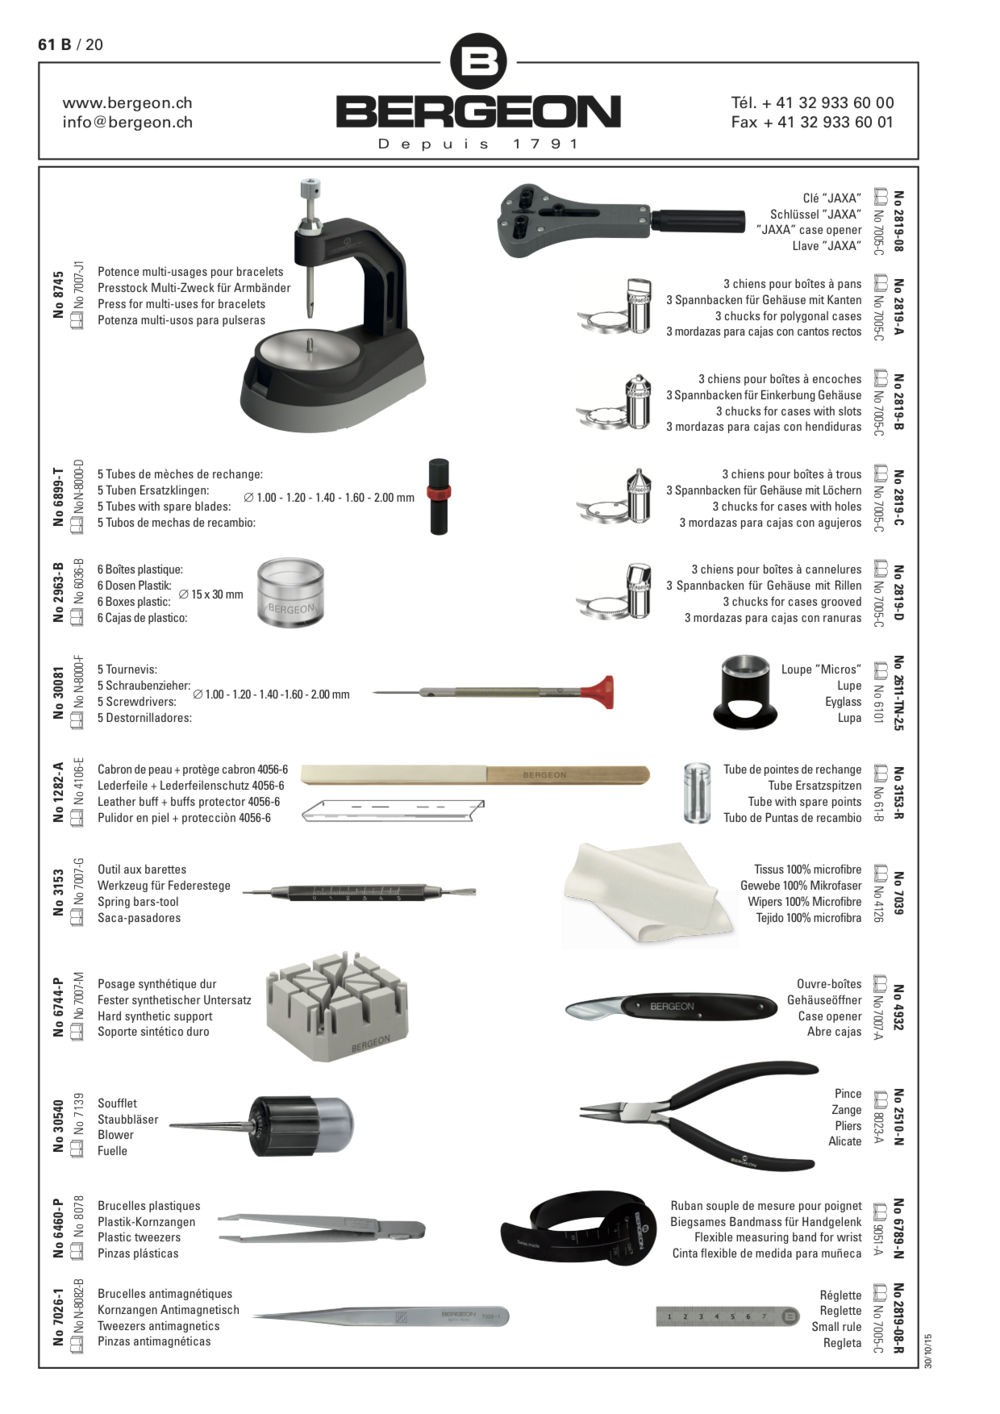 Detailed content of the Master Service Tool Case - Ref. 7815